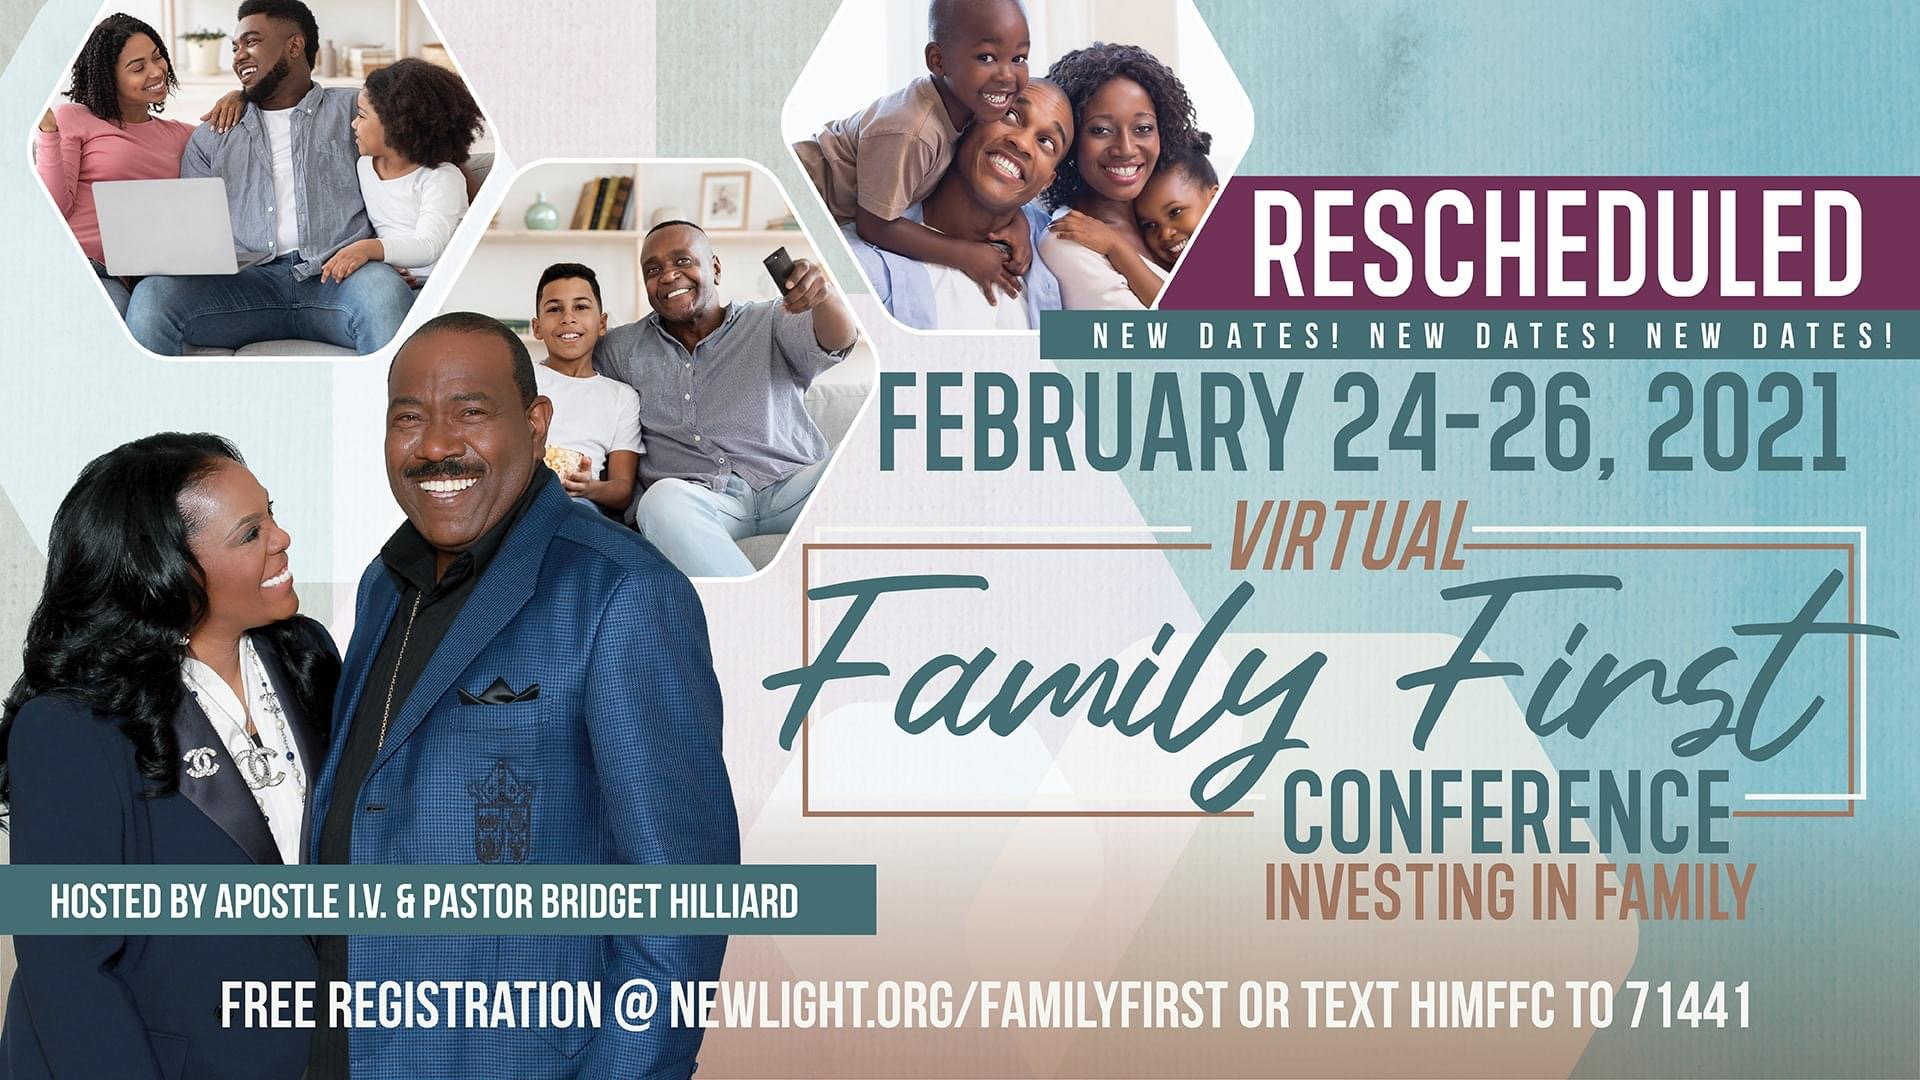 Family First Conference 2.JPG image